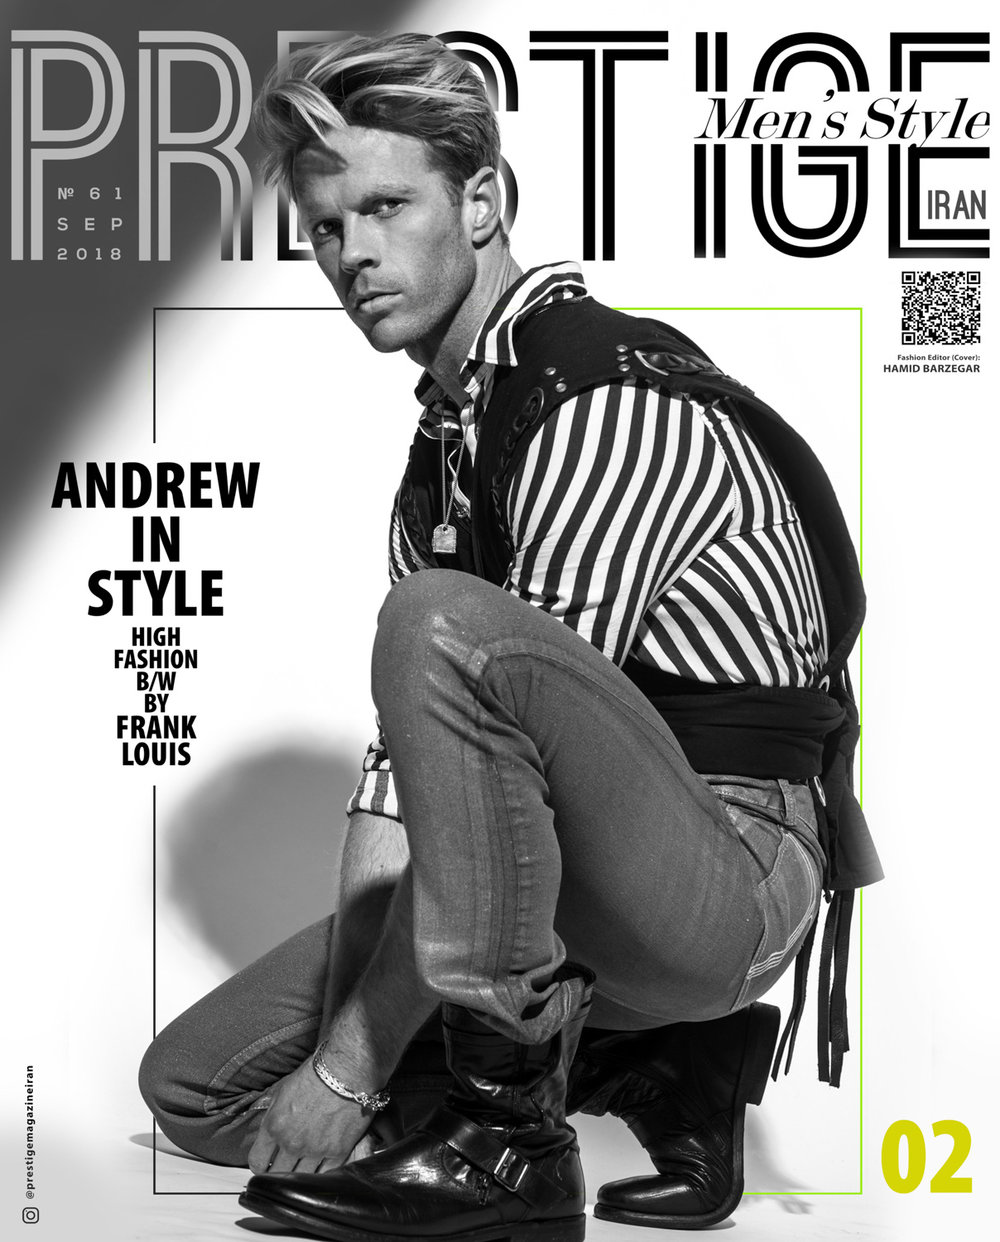 Prestige Men's Style Magazine No.61 Sep2018 Cover.jpg